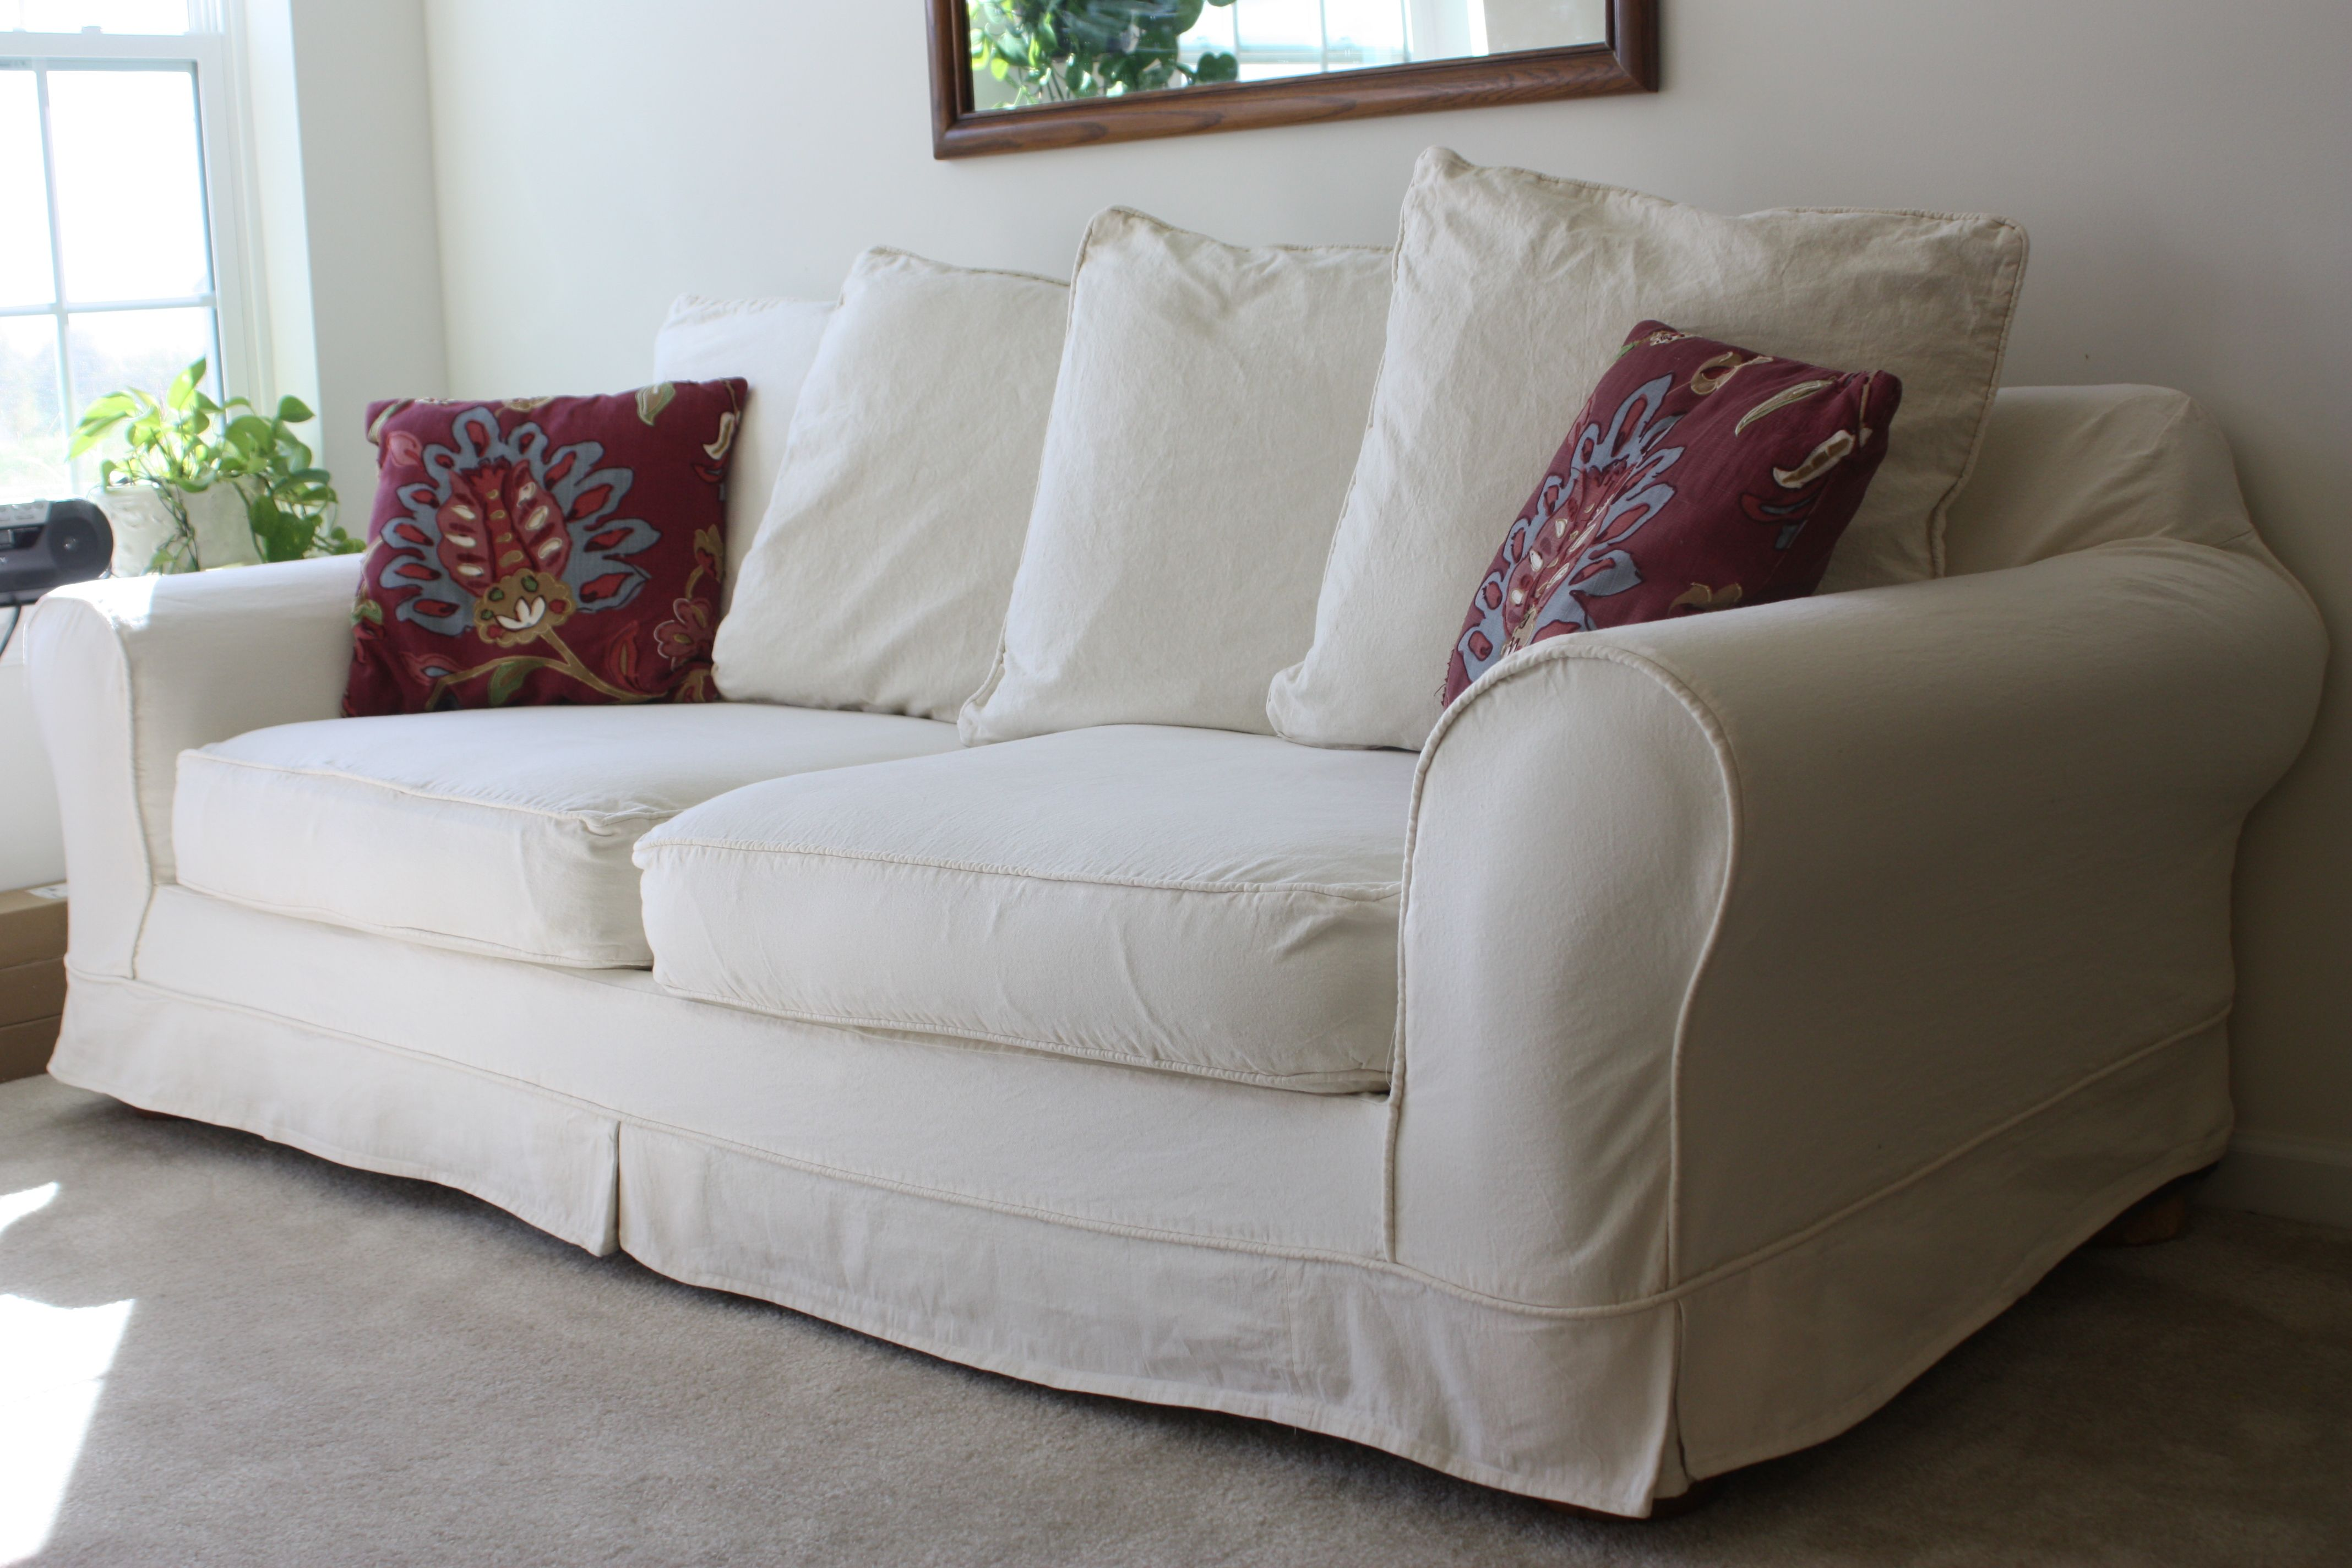 Exceptionnel Nice White Canvas Sofa , Best White Canvas Sofa 37 For Your Sofa Design  Ideas With